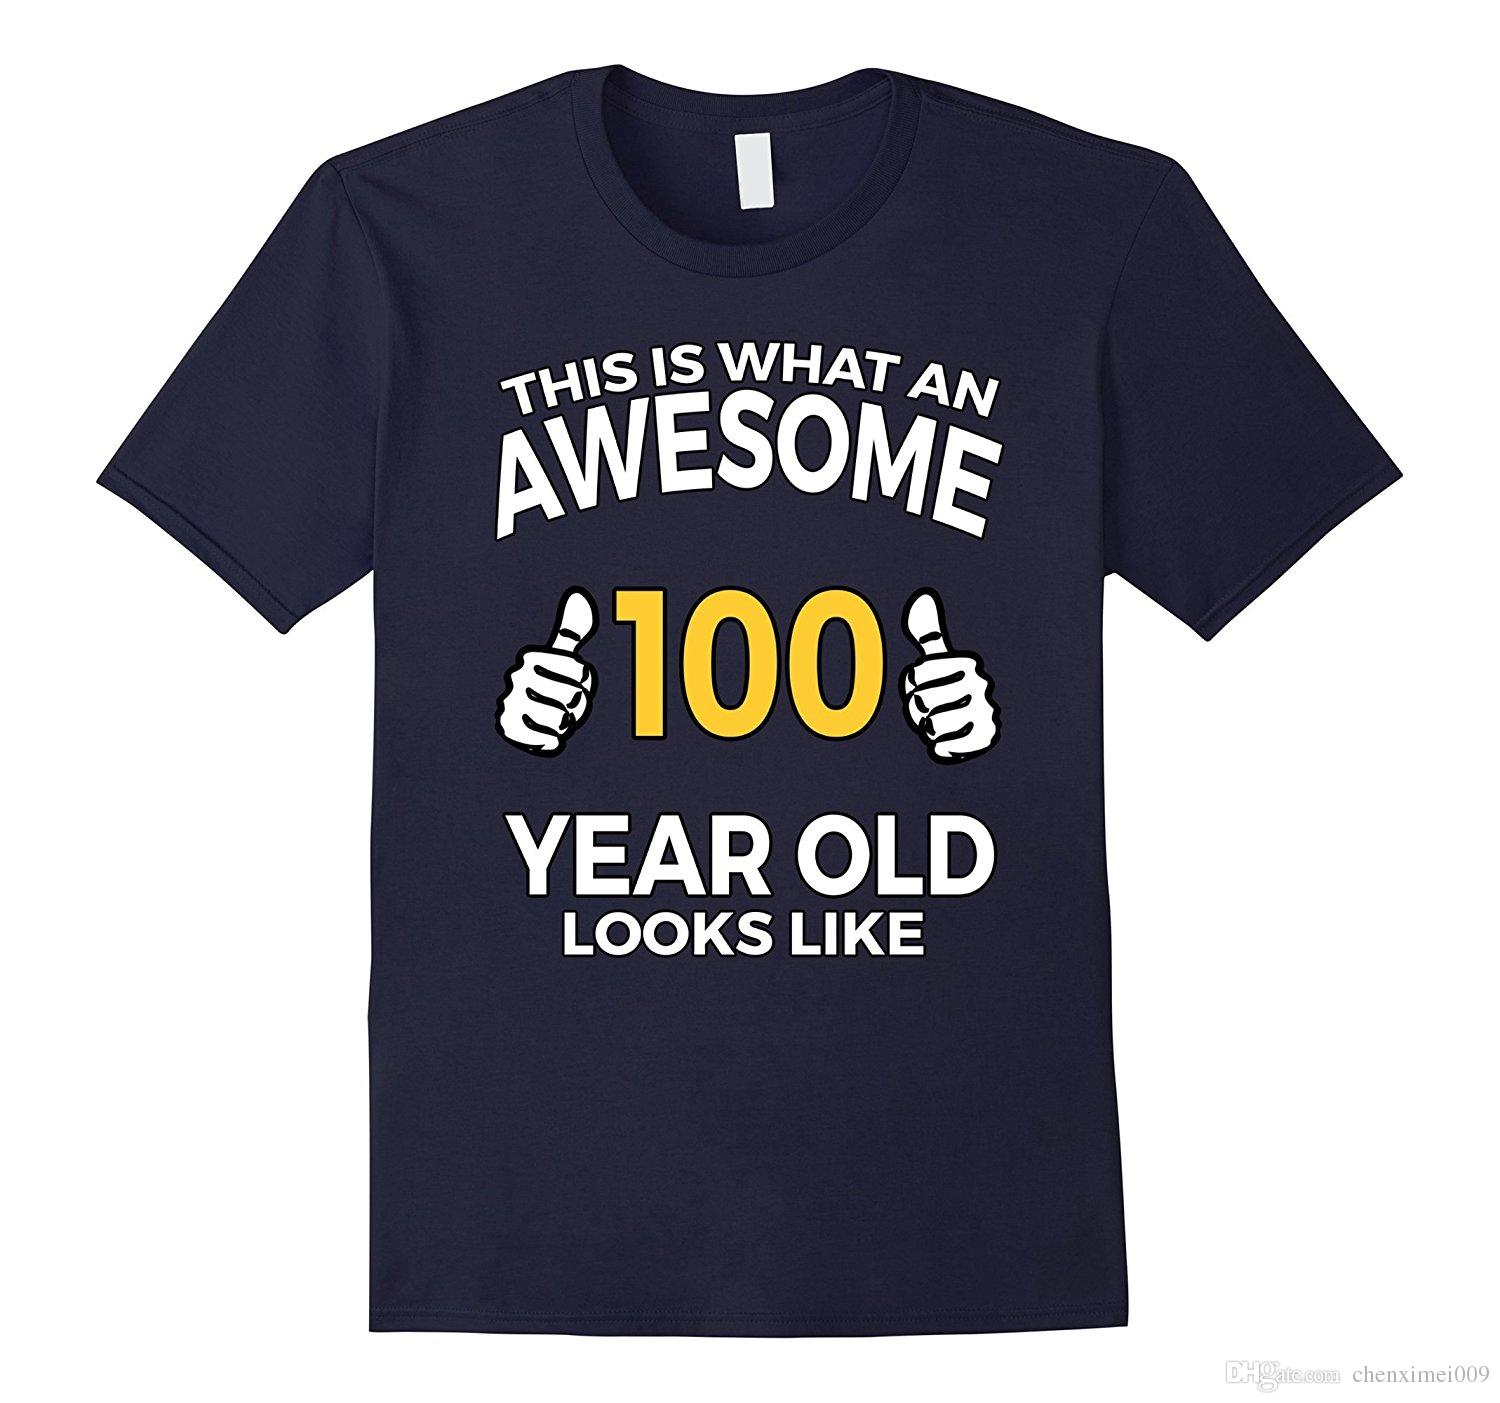 100 Year Old Birthday Gifts T Shirt For Senior Man Or Woman Og Shrt From Chenximei009 1421